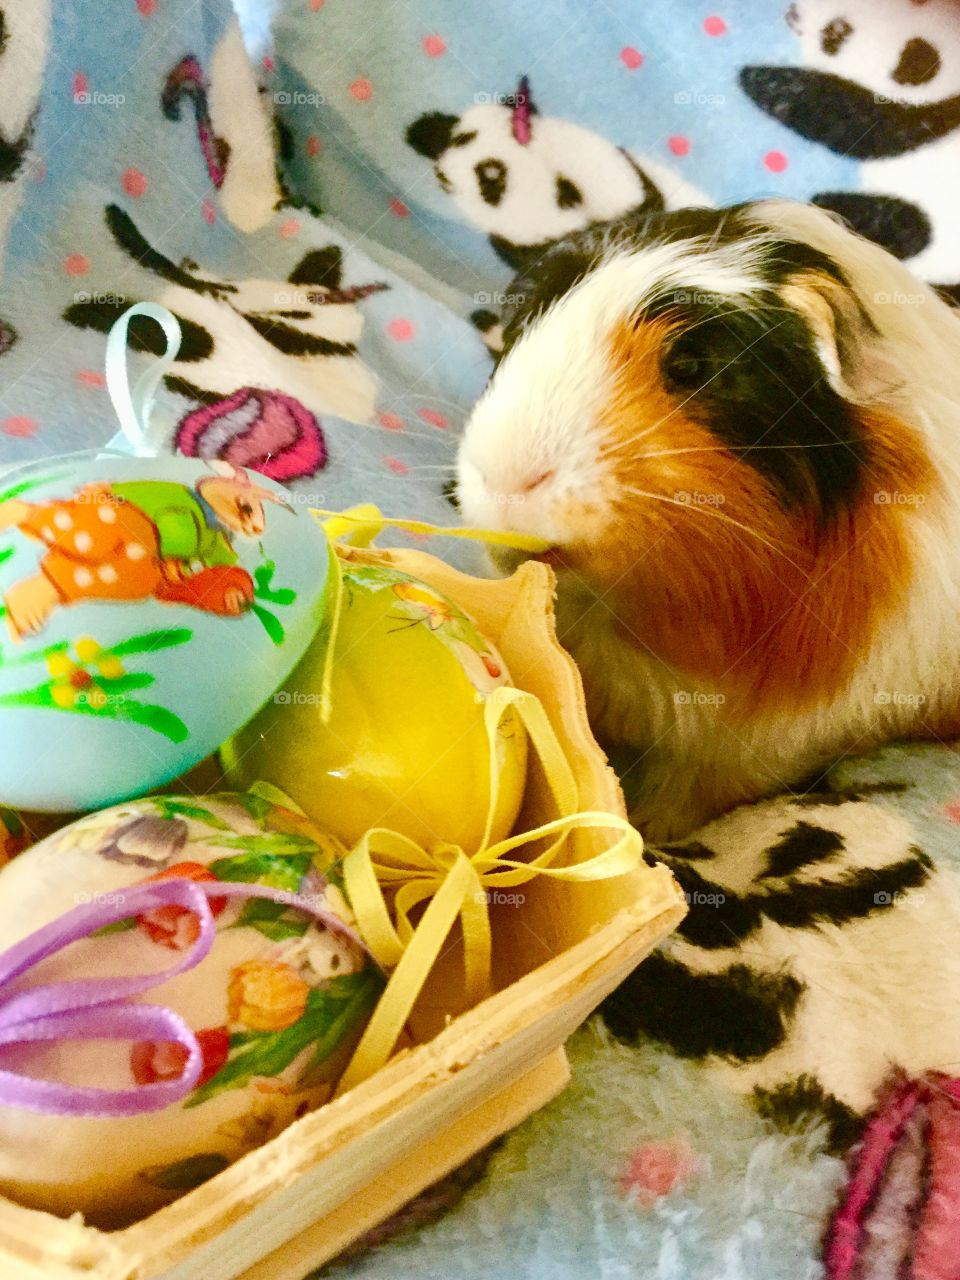 Easter time celebration and decoration